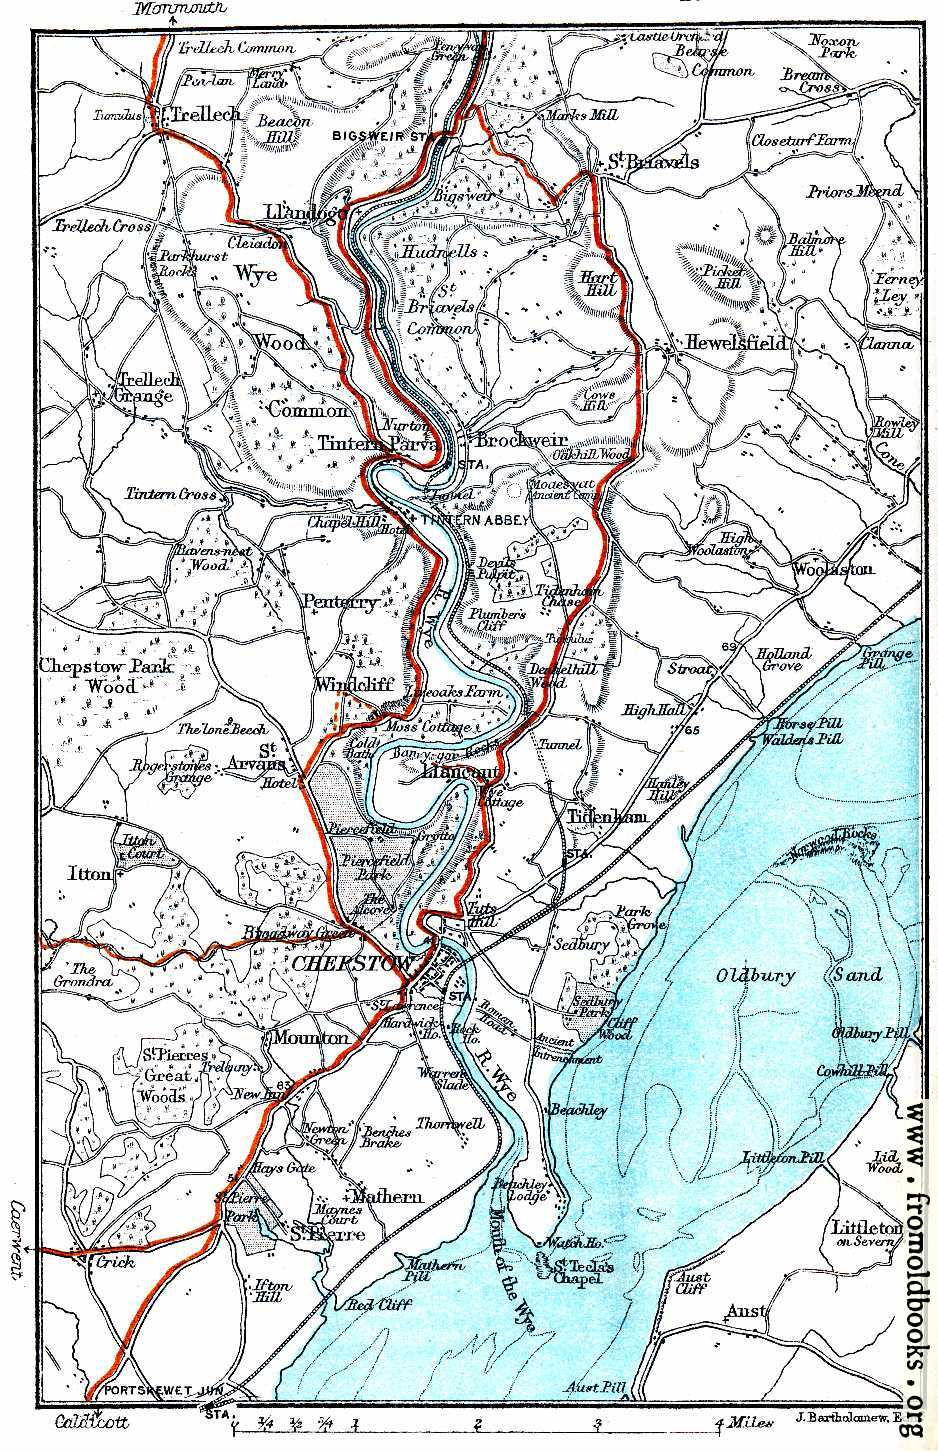 Map river wye chepstow etc 938x1452 317k jpg free download gumiabroncs Choice Image